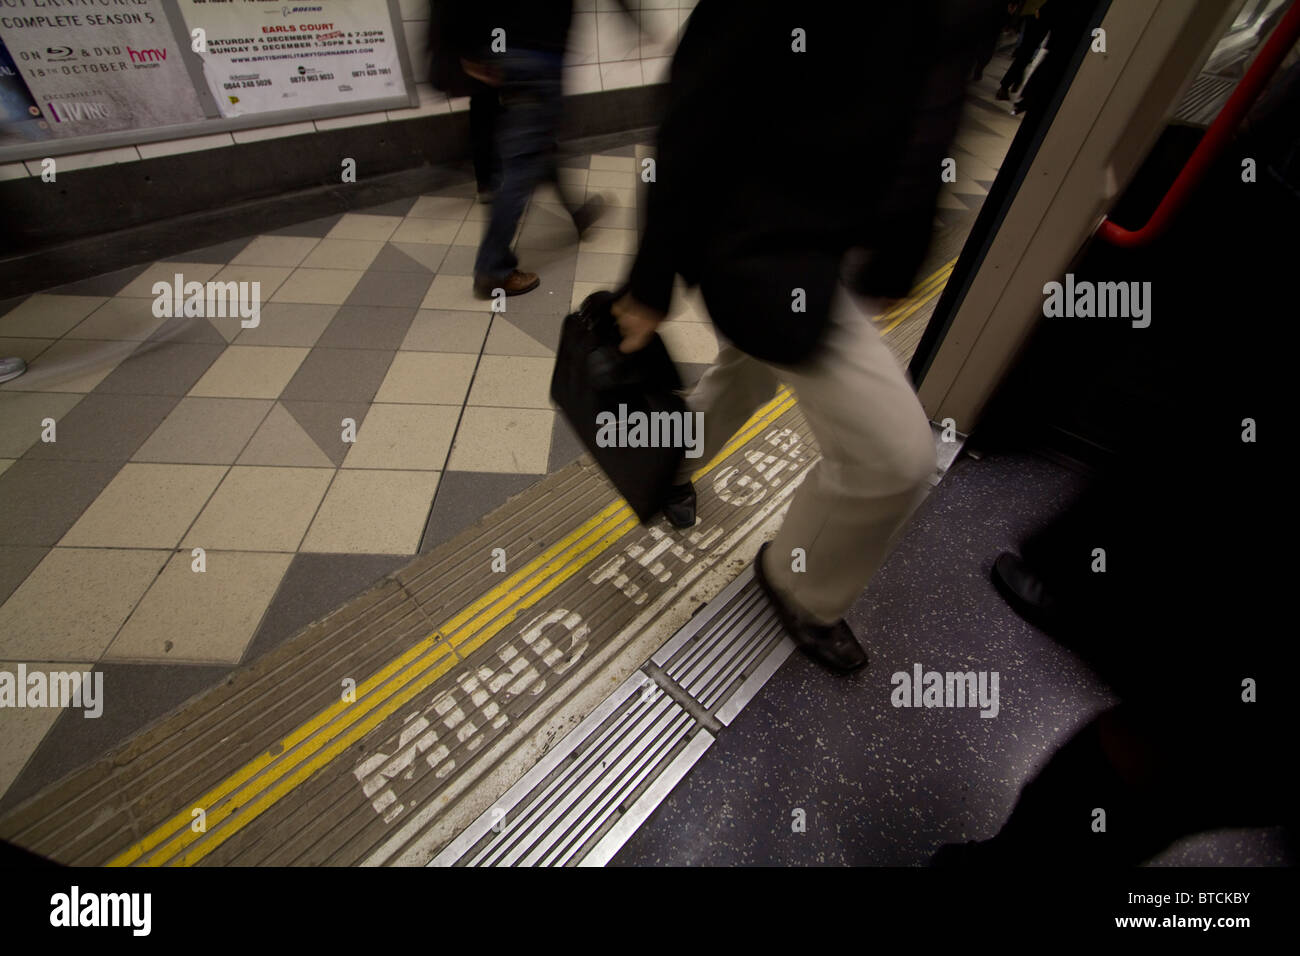 Passenger stepping onto london underground train on the tube network, with mind the gap sign on platform - Stock Image